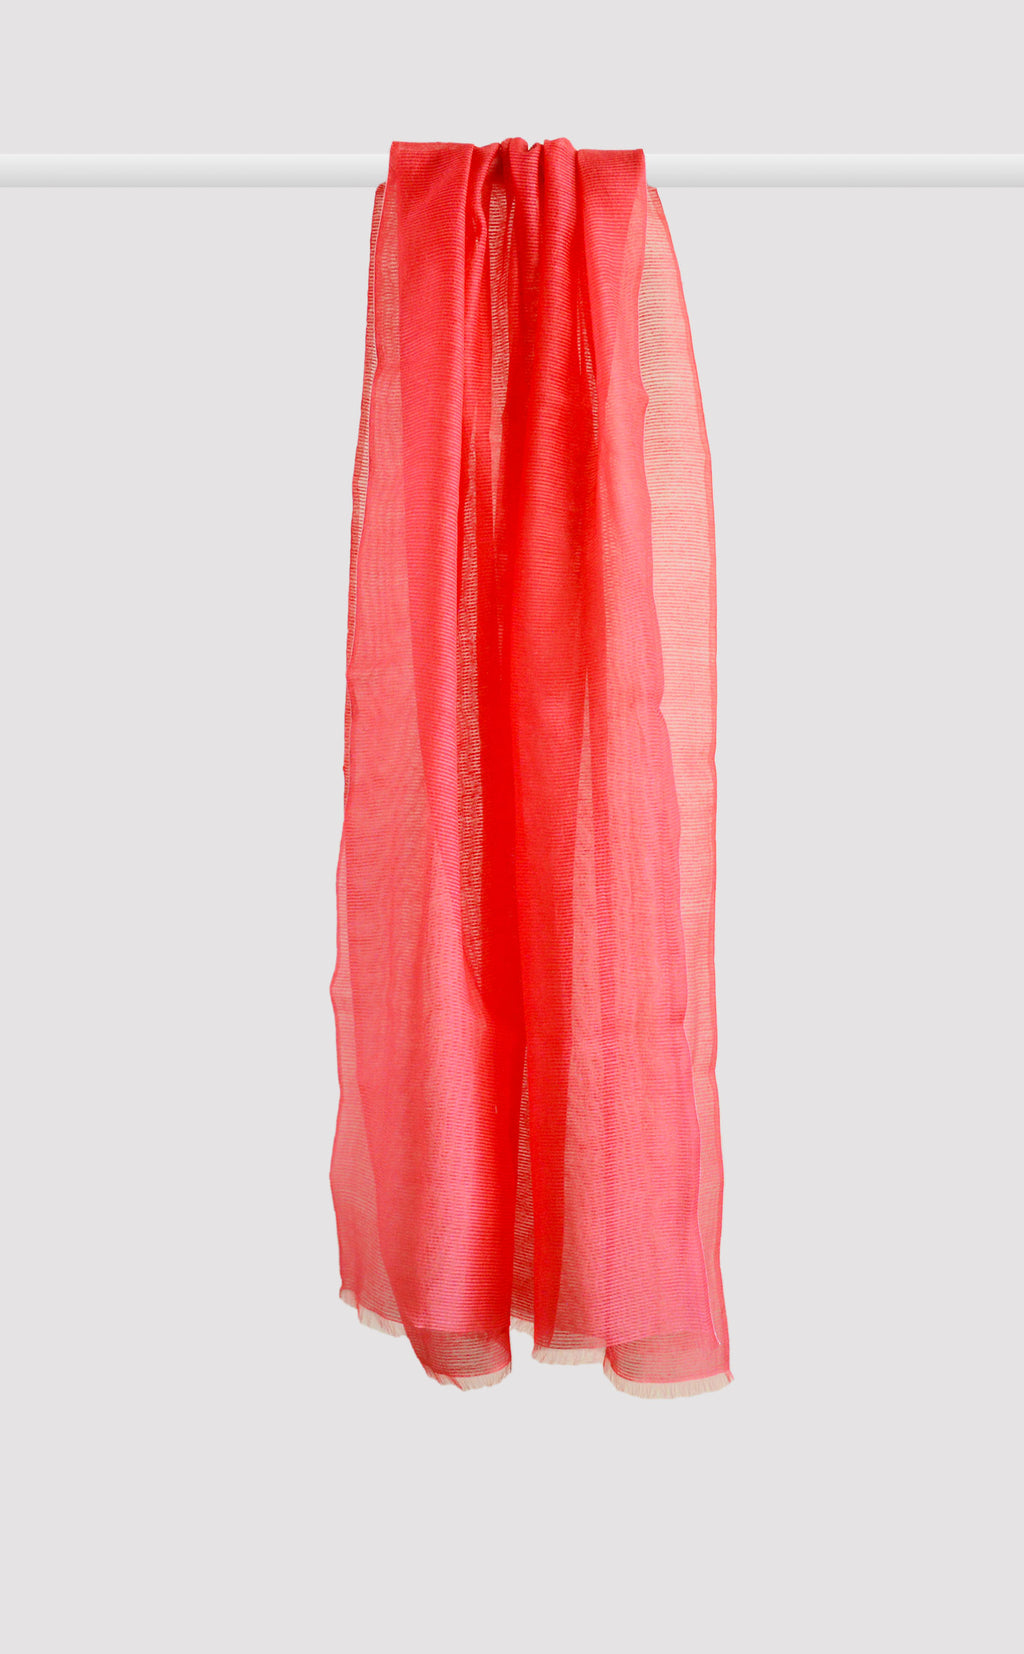 Cherry Red Organza Dupatta